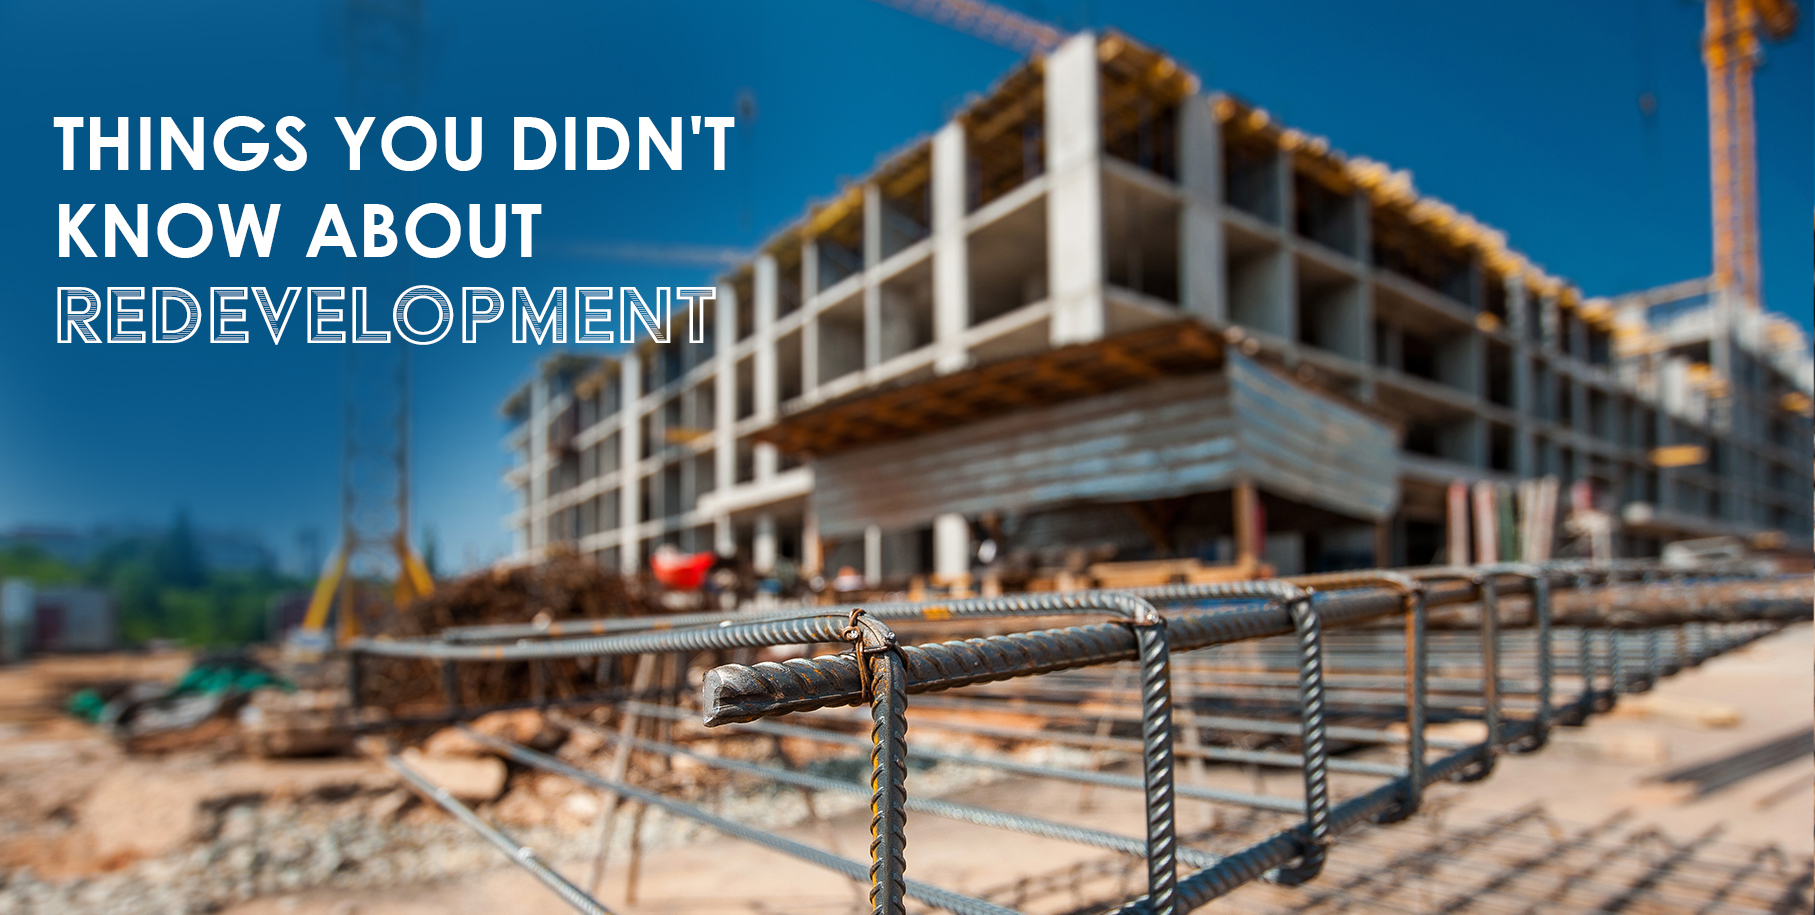 Things you didn't know about Redevelopment